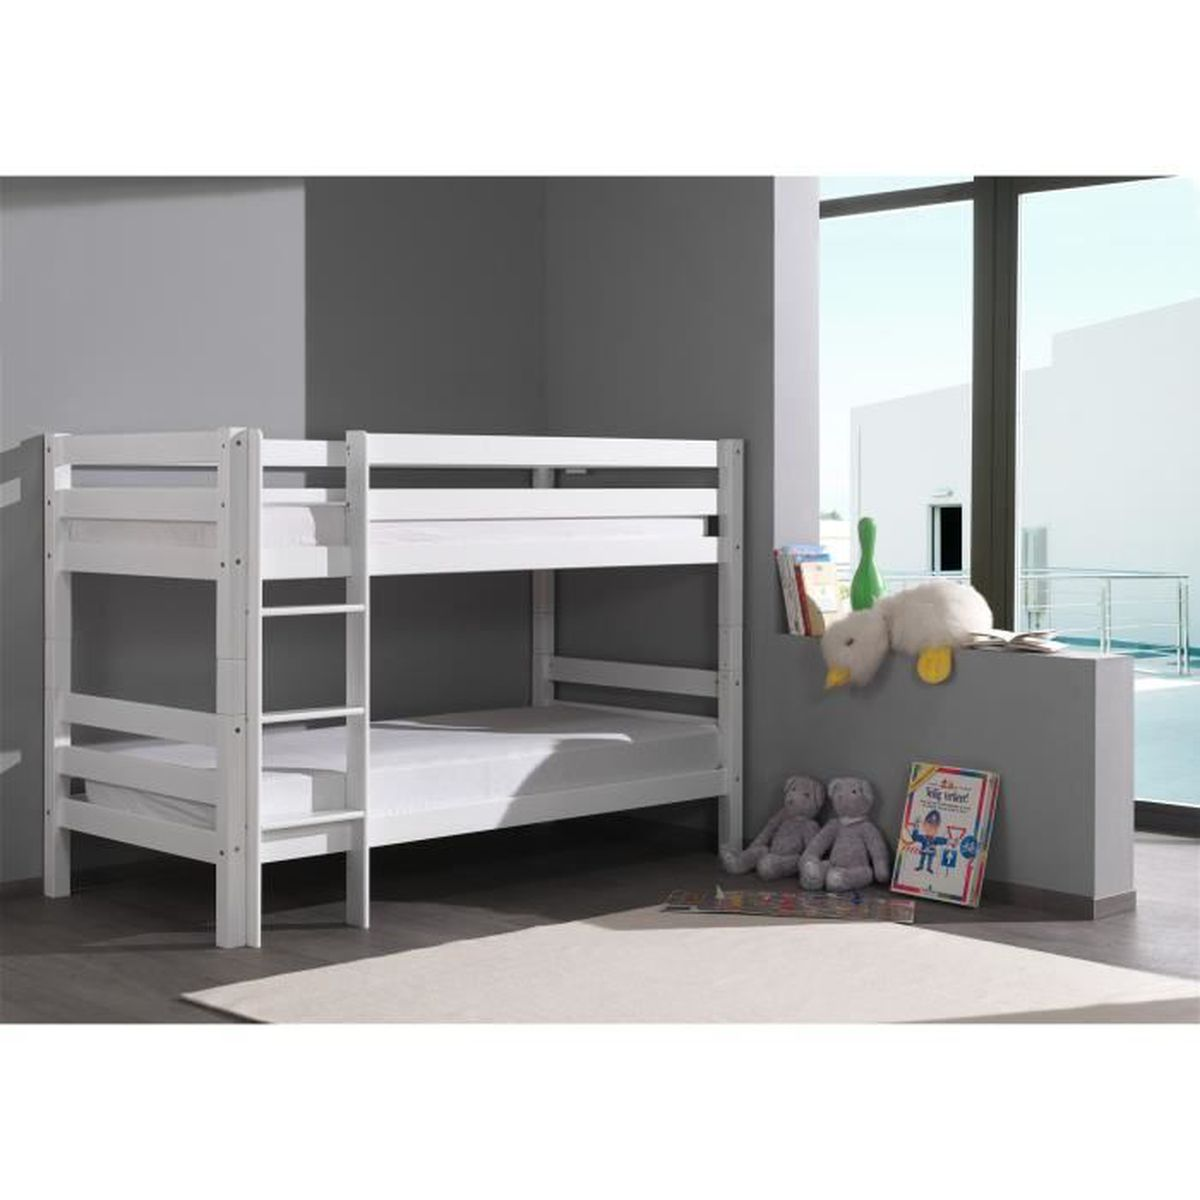 lit superpos 90x200 hauteur 140 cm en h tre massif blanc blanc achat vente lits superpos s. Black Bedroom Furniture Sets. Home Design Ideas